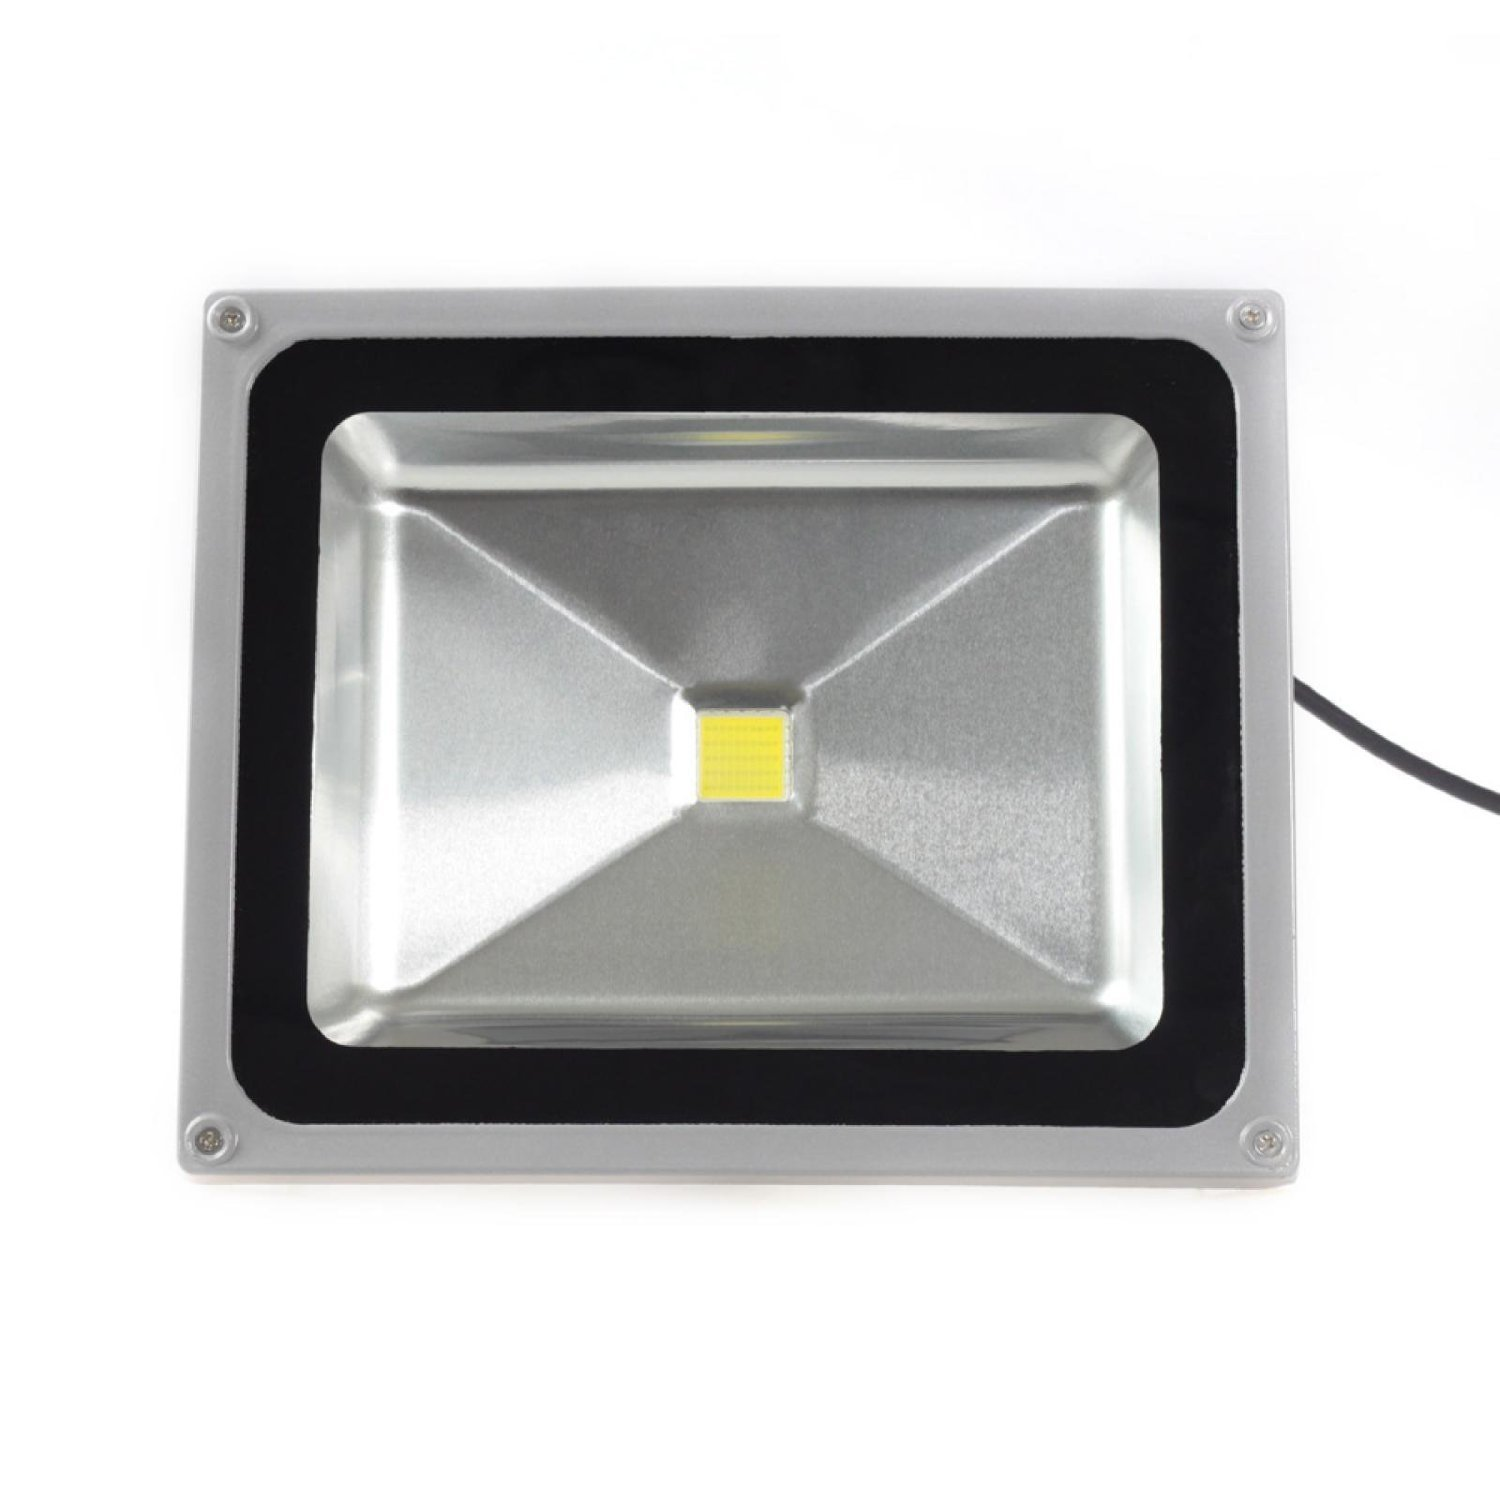 GZNIGHT 50W 110V LED Flood Lights Super Bright Garden Wall Yard LED Floodlights Lamp Outdoor Lighting Warm White Security Light Waterproof IP65 Bowfishing Lights Floodlight Lamp (Warm White)